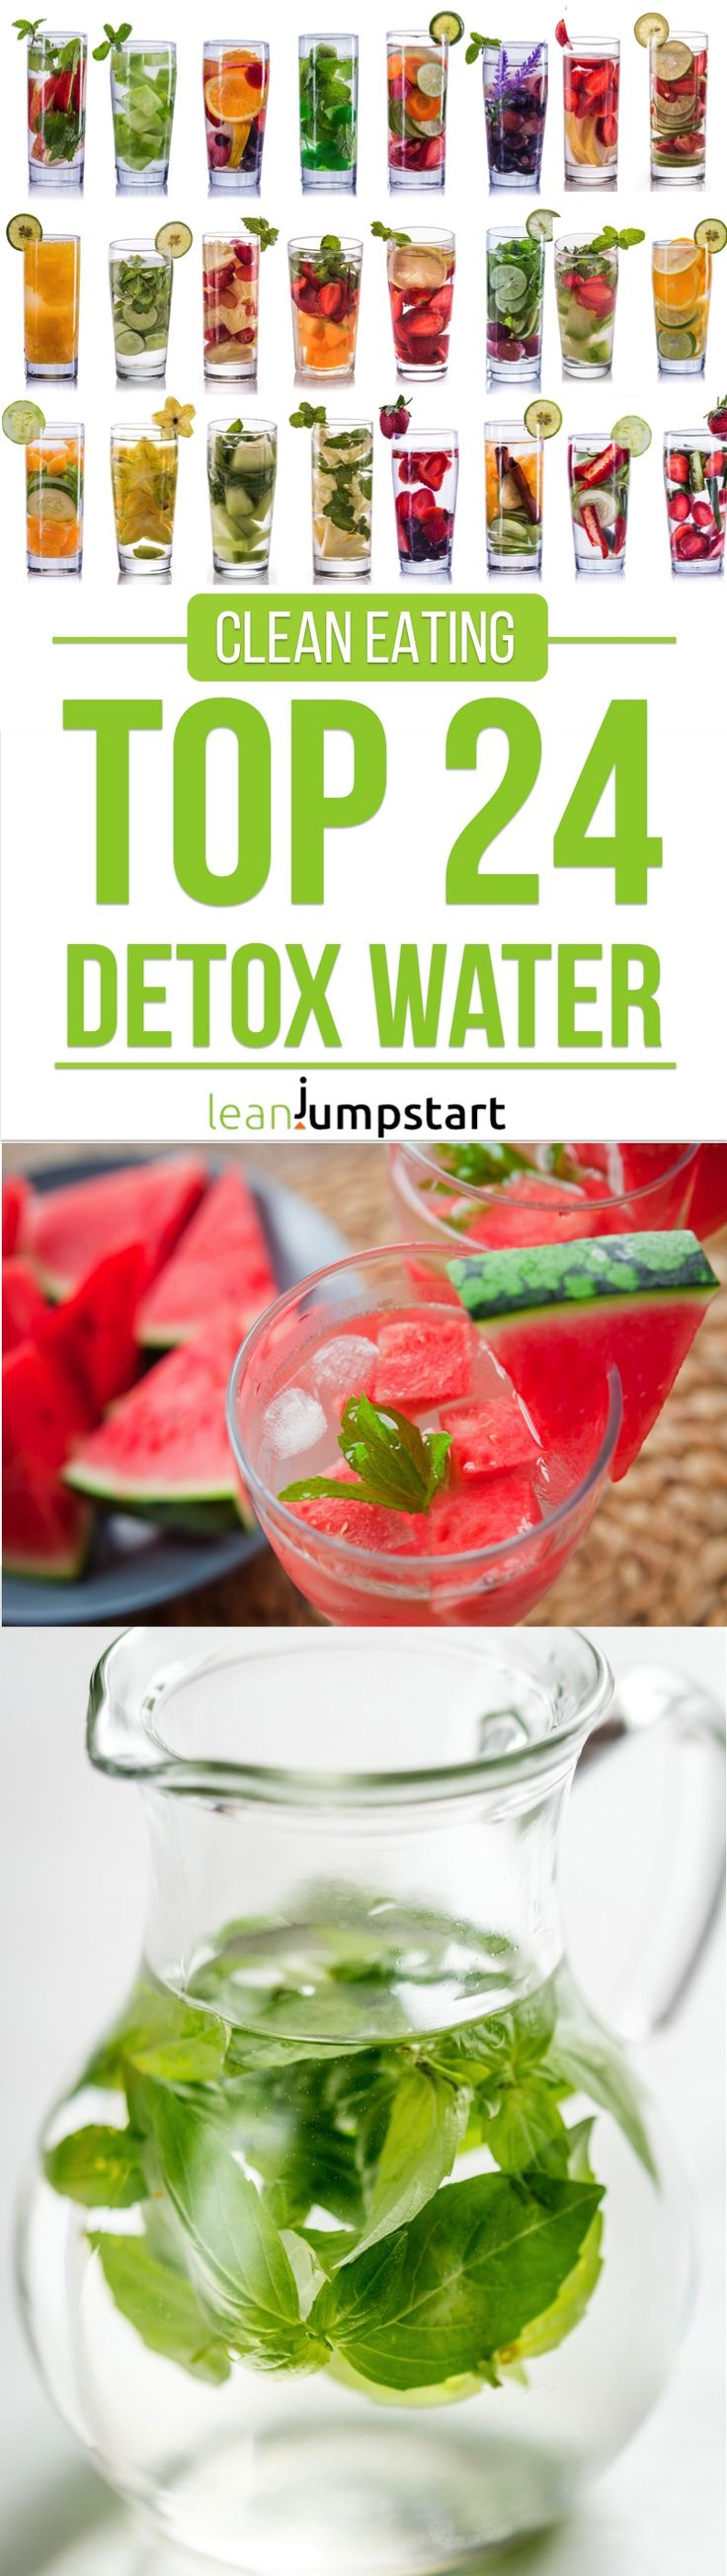 detox water top 24 clean recipes to boost your metabolism detoxwater eatclean leanjumpstart. Black Bedroom Furniture Sets. Home Design Ideas